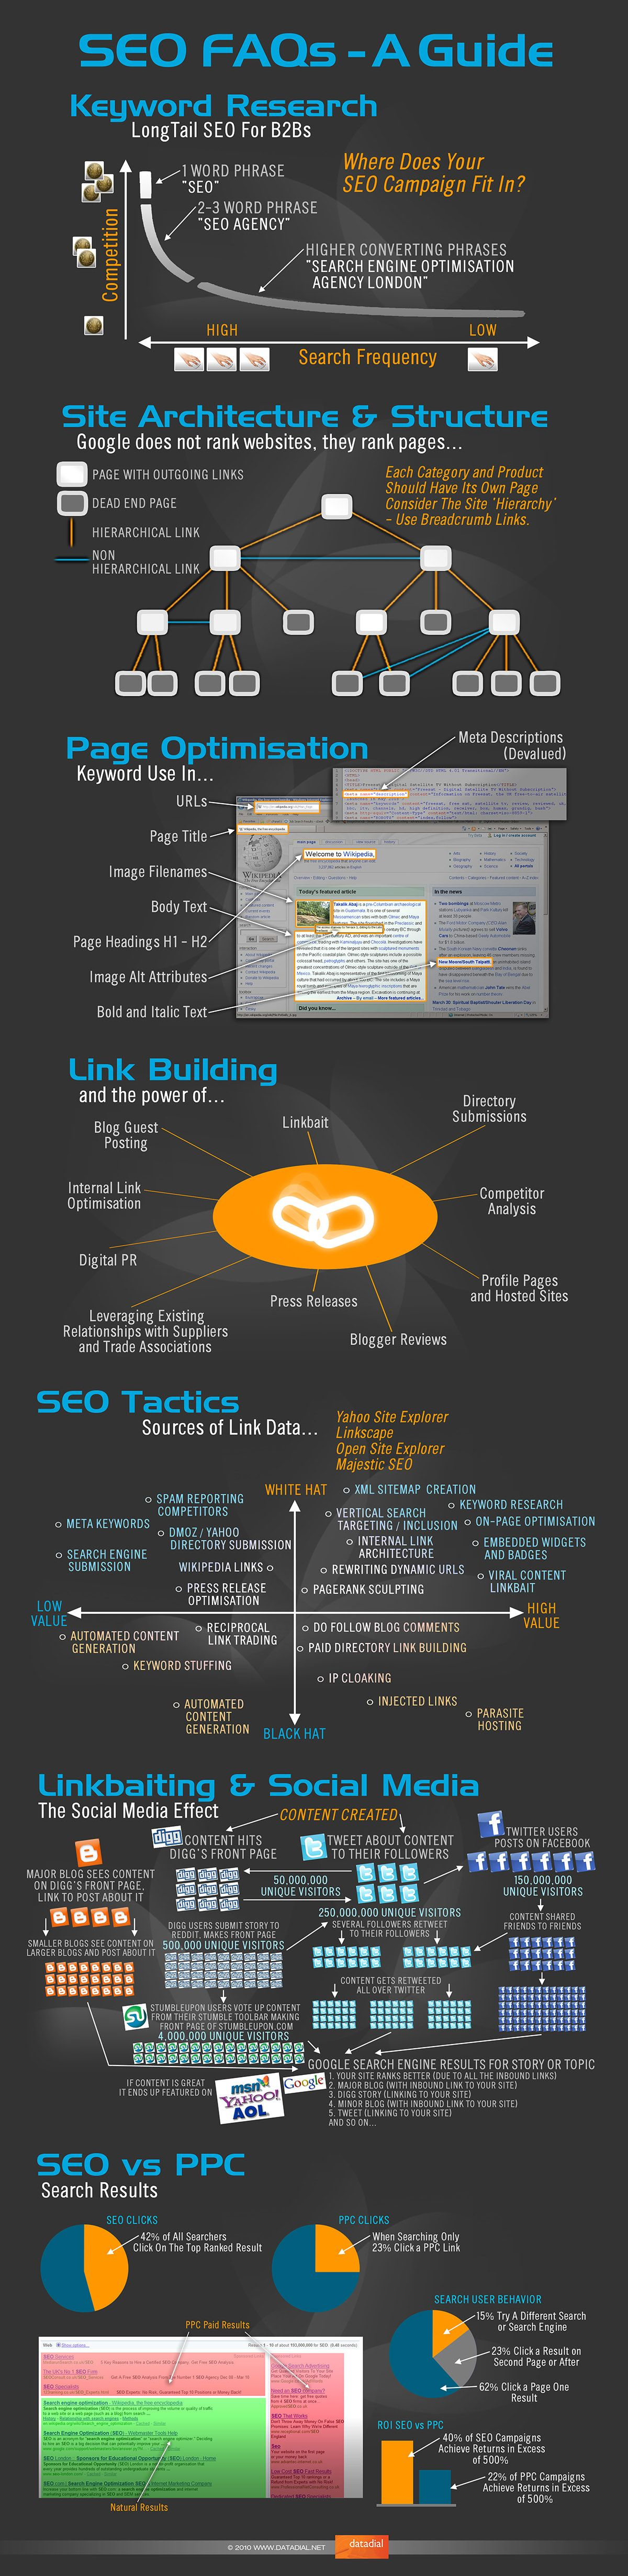 Search Engine Optimisation - SEO Guide 2015